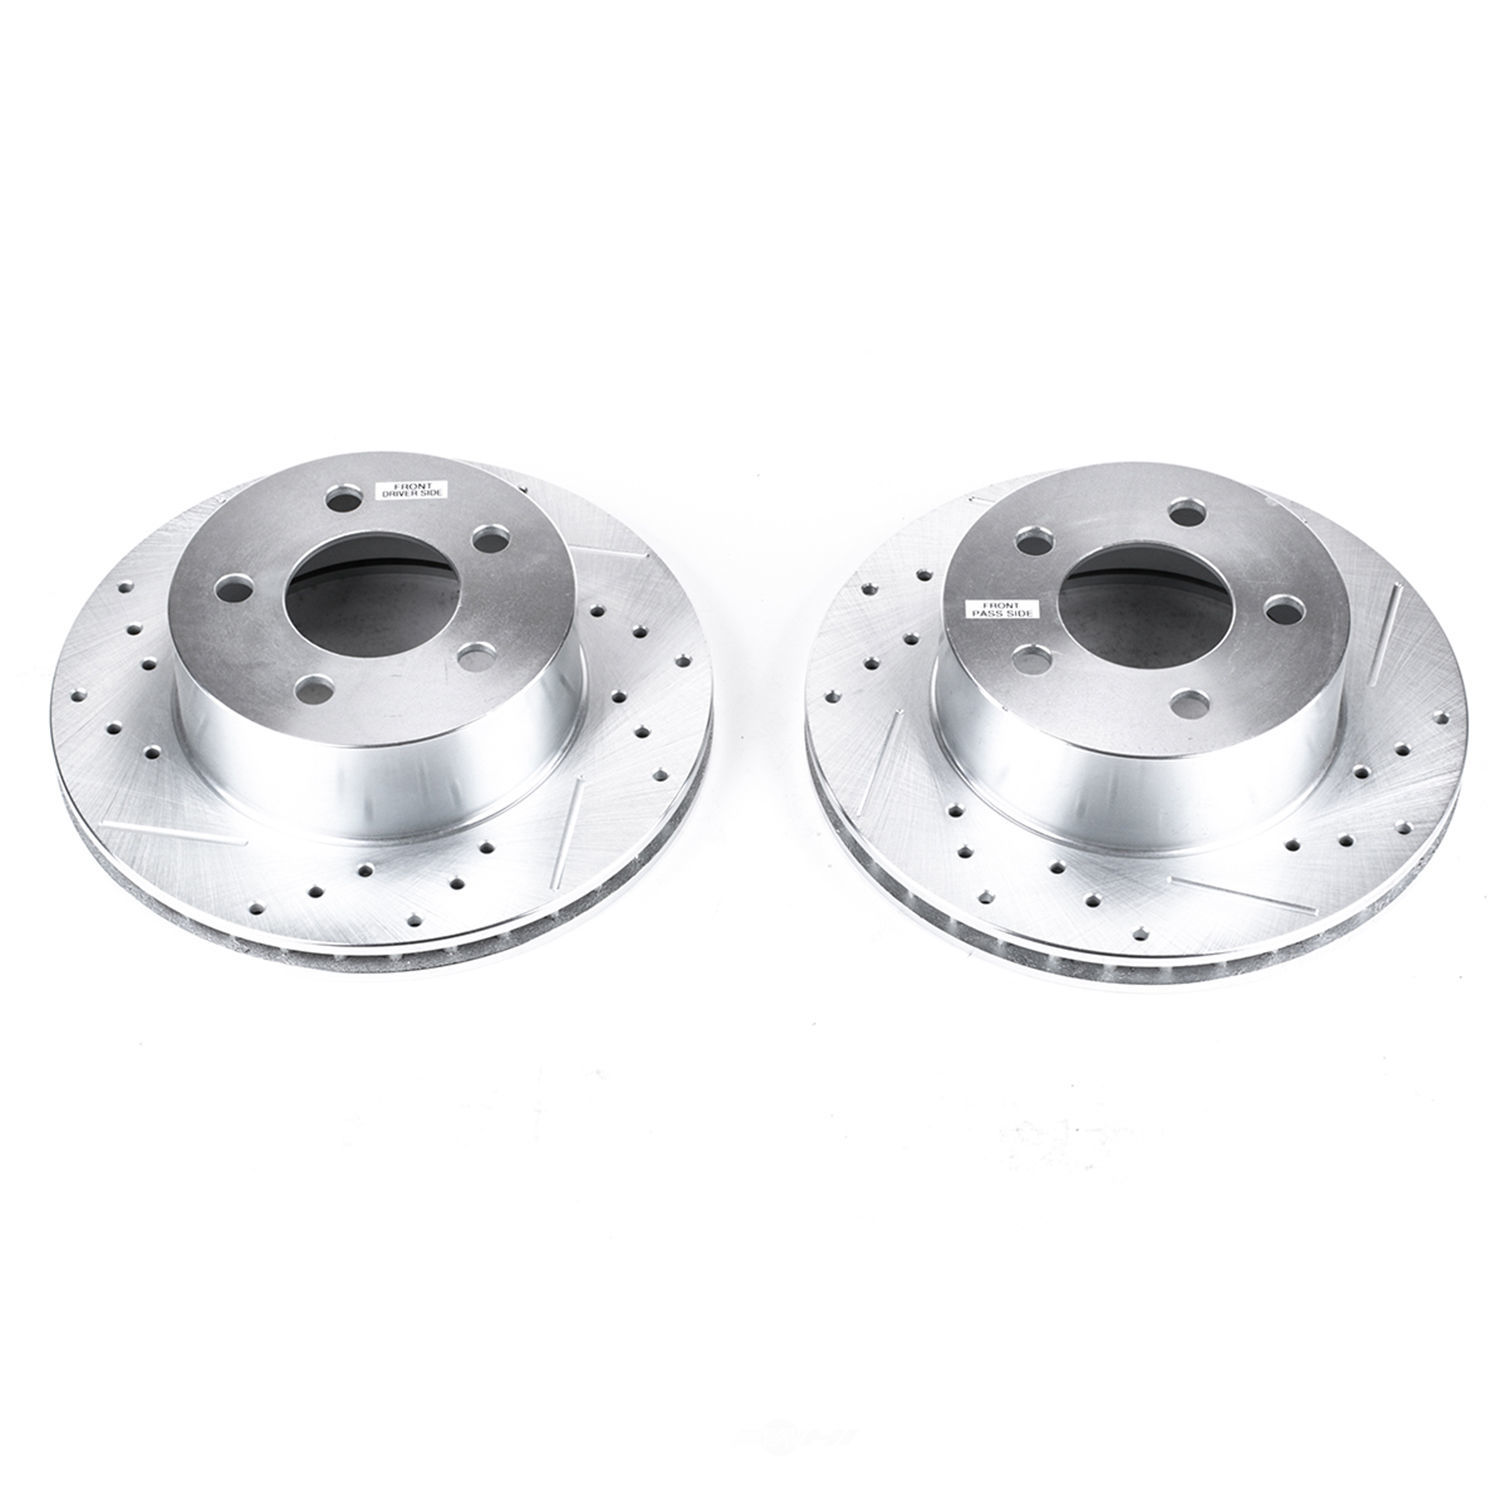 POWER STOP - Extreme Performance Drilled & Slotted Brake Rotor (Front) - PWS AR8722XPR